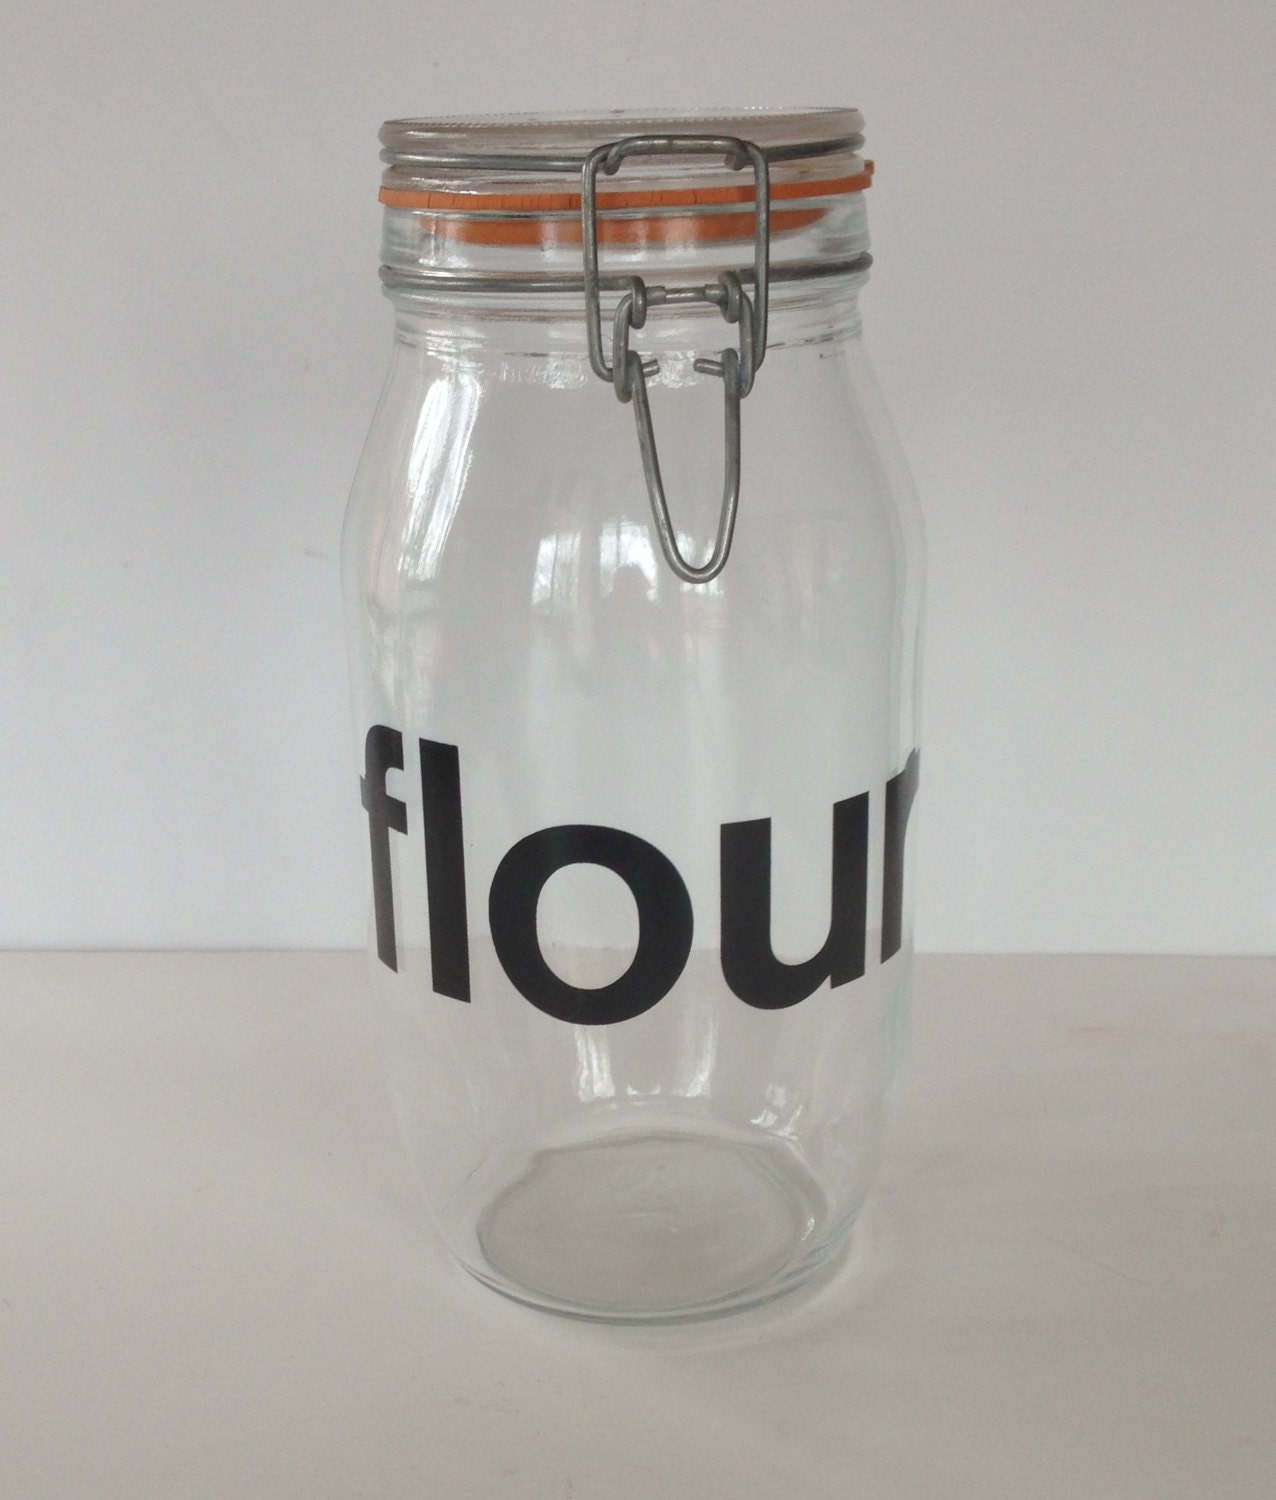 vintage retro flour glass canister with helvetica font